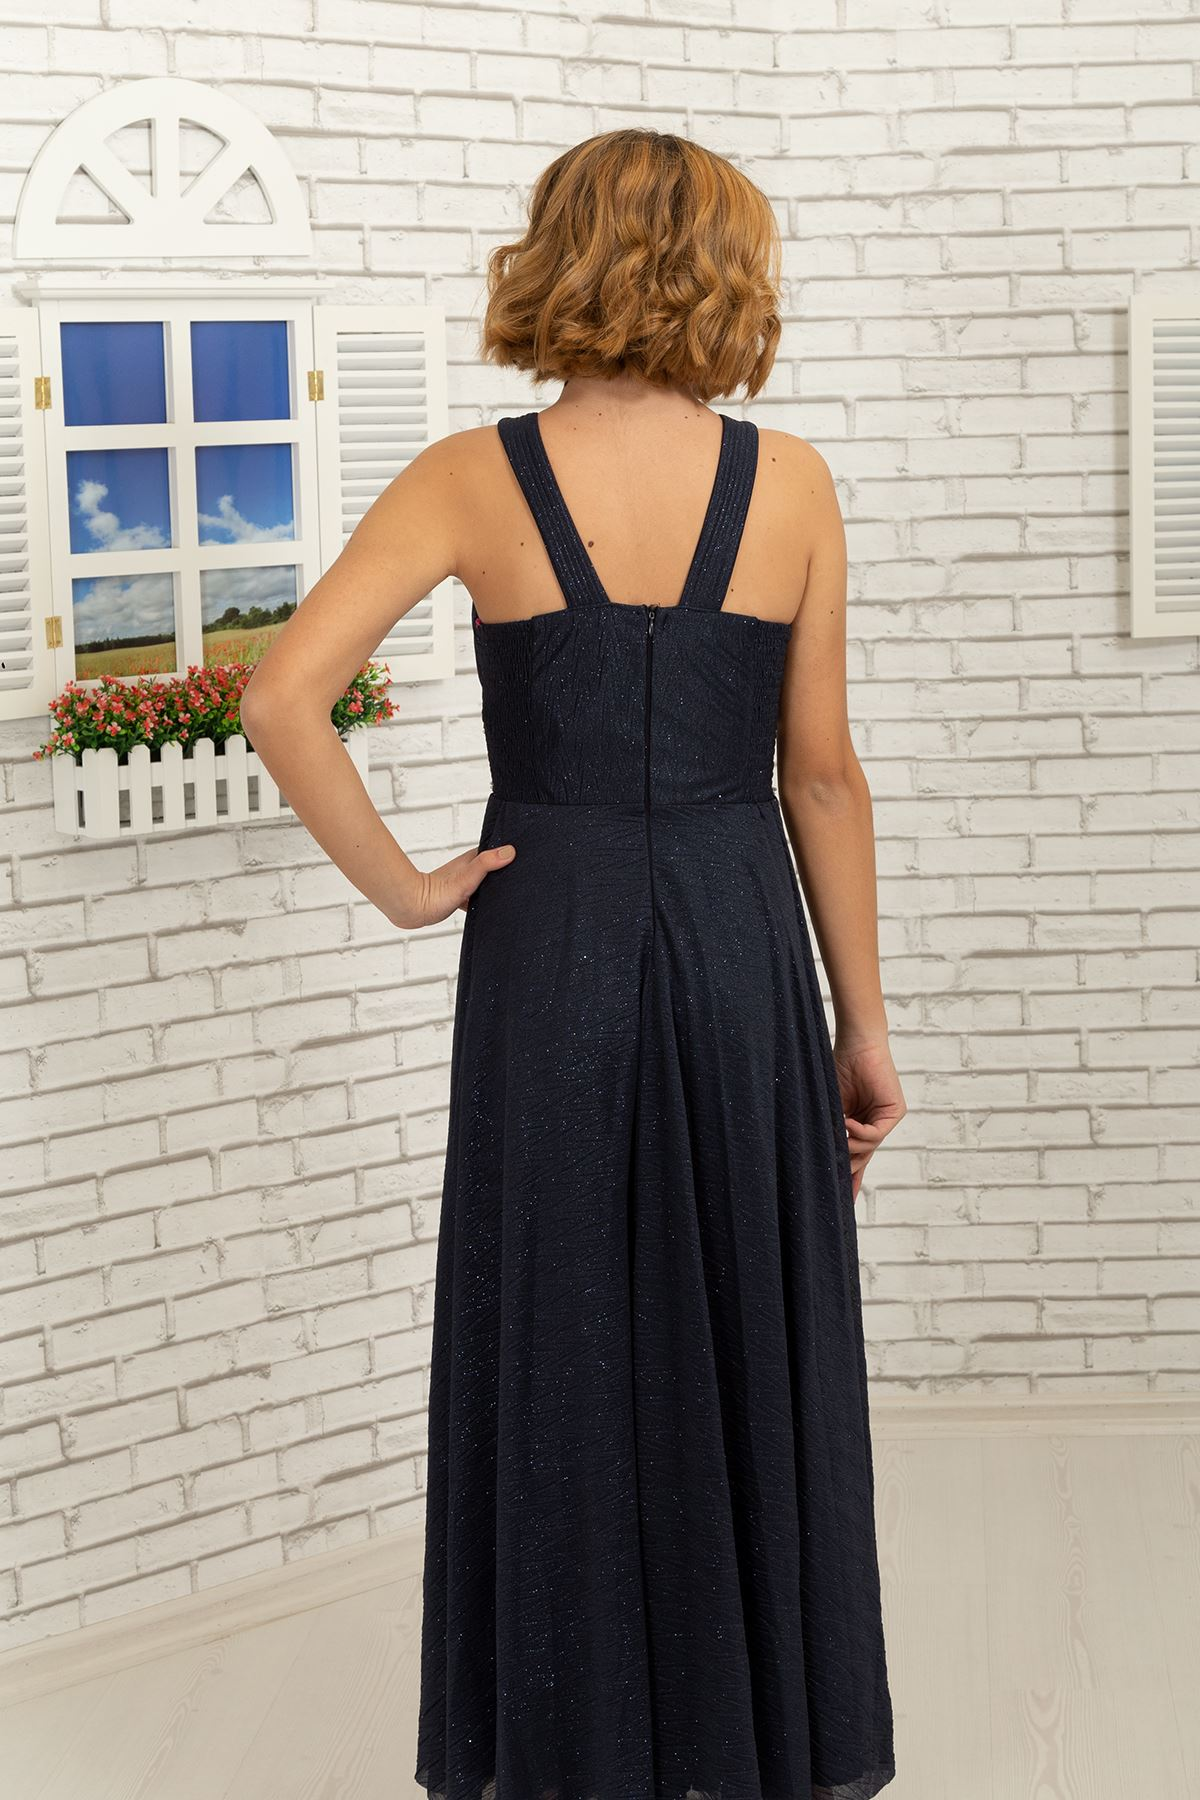 Waist and neck Stone detailed, zigzag silvery chiffon girl children evening dress 468 Navy Blue